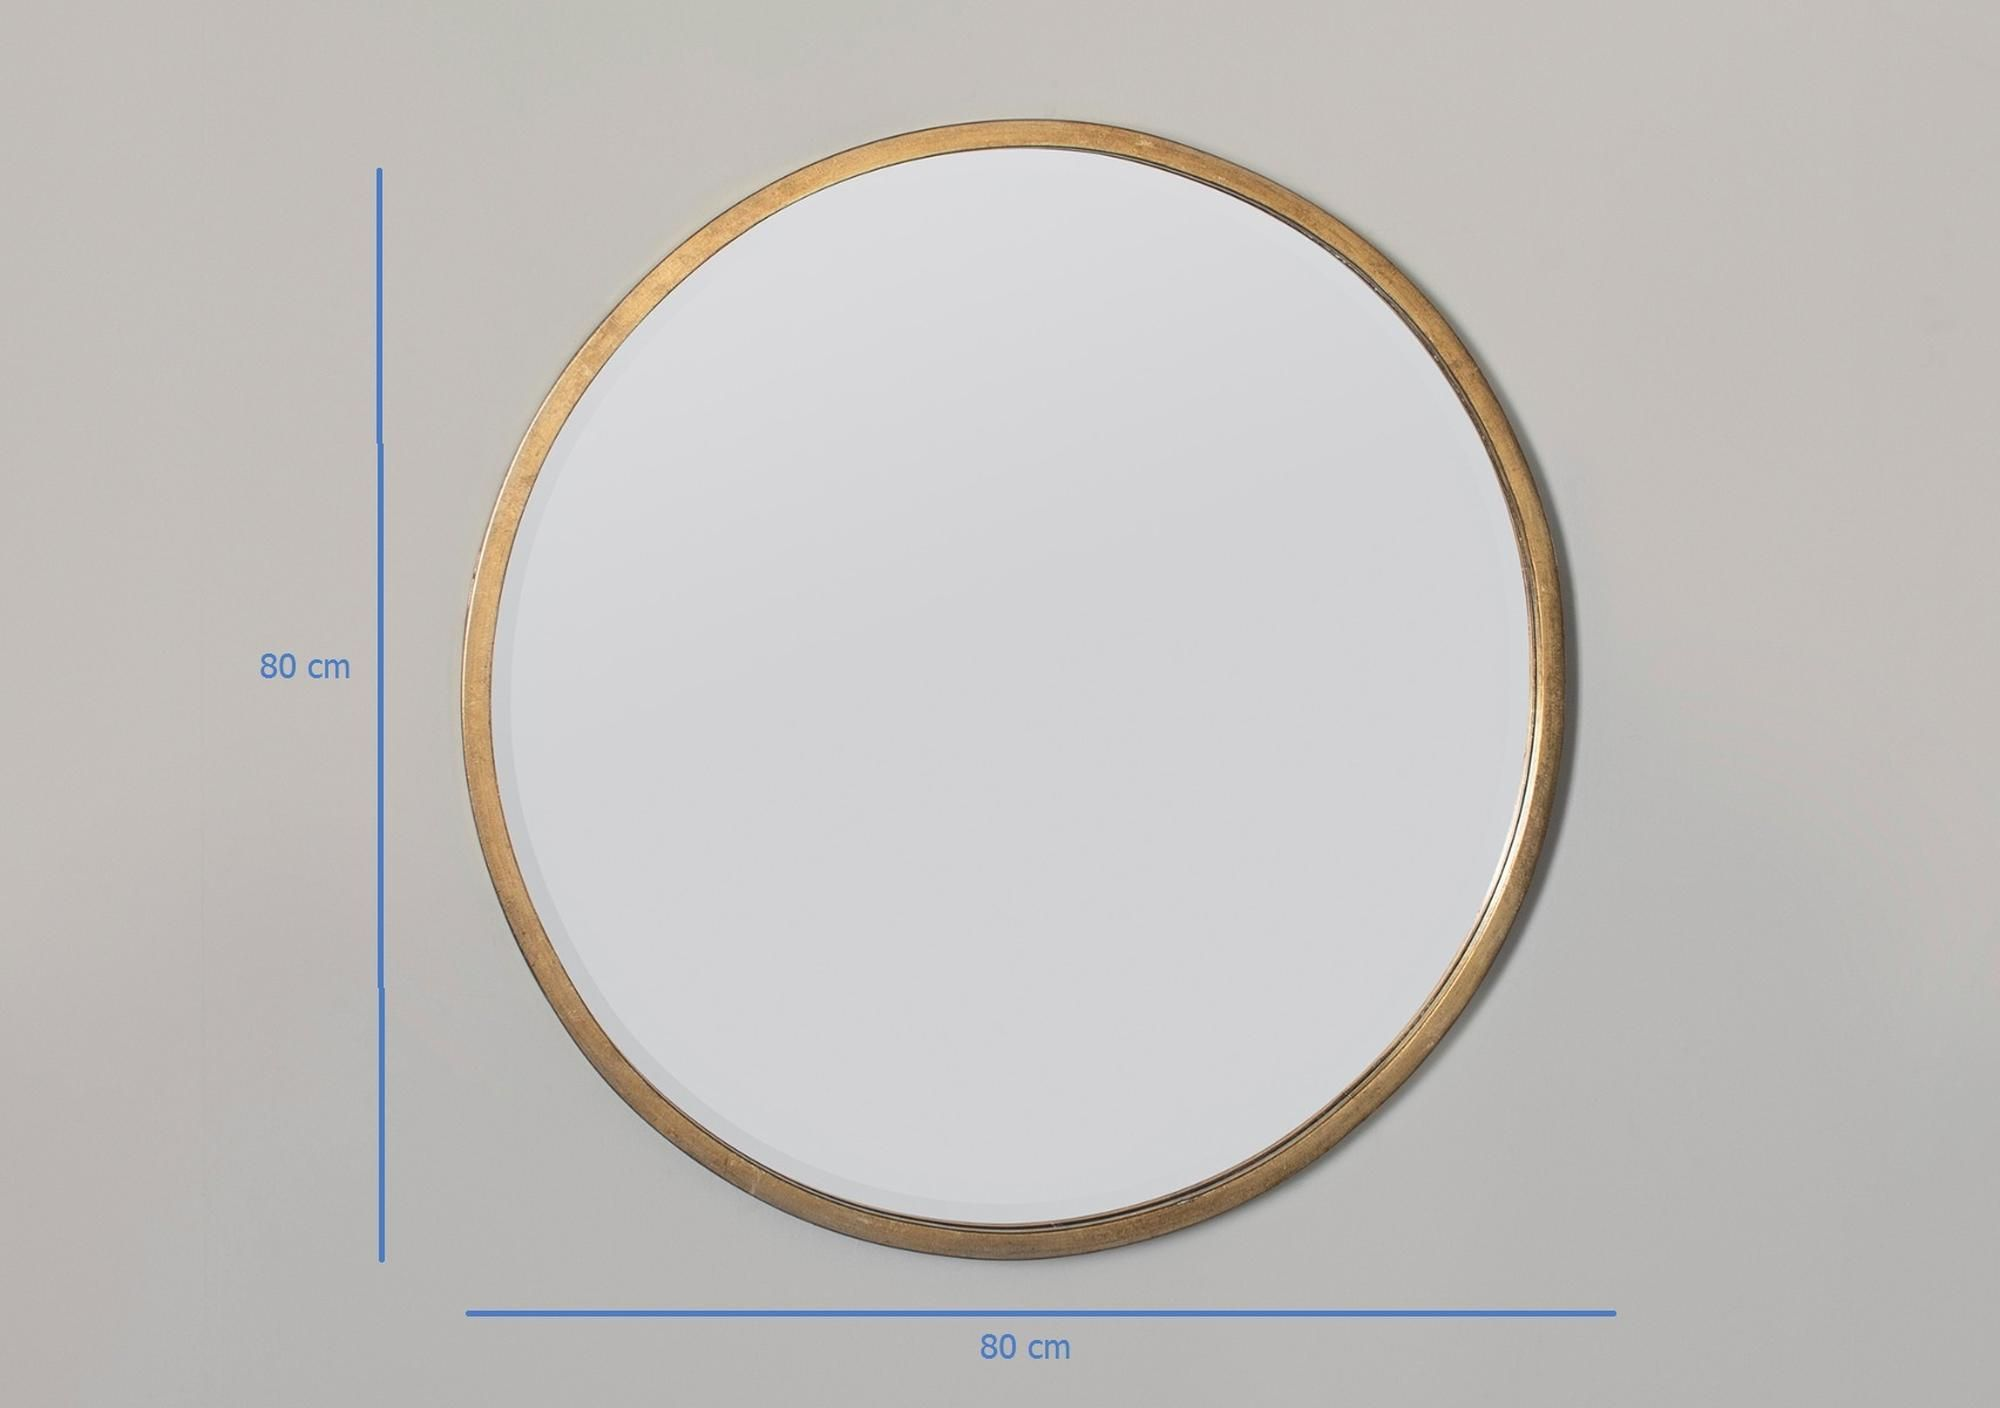 Newport Round Mirror in Antique Gold | Antique gold mirror ...